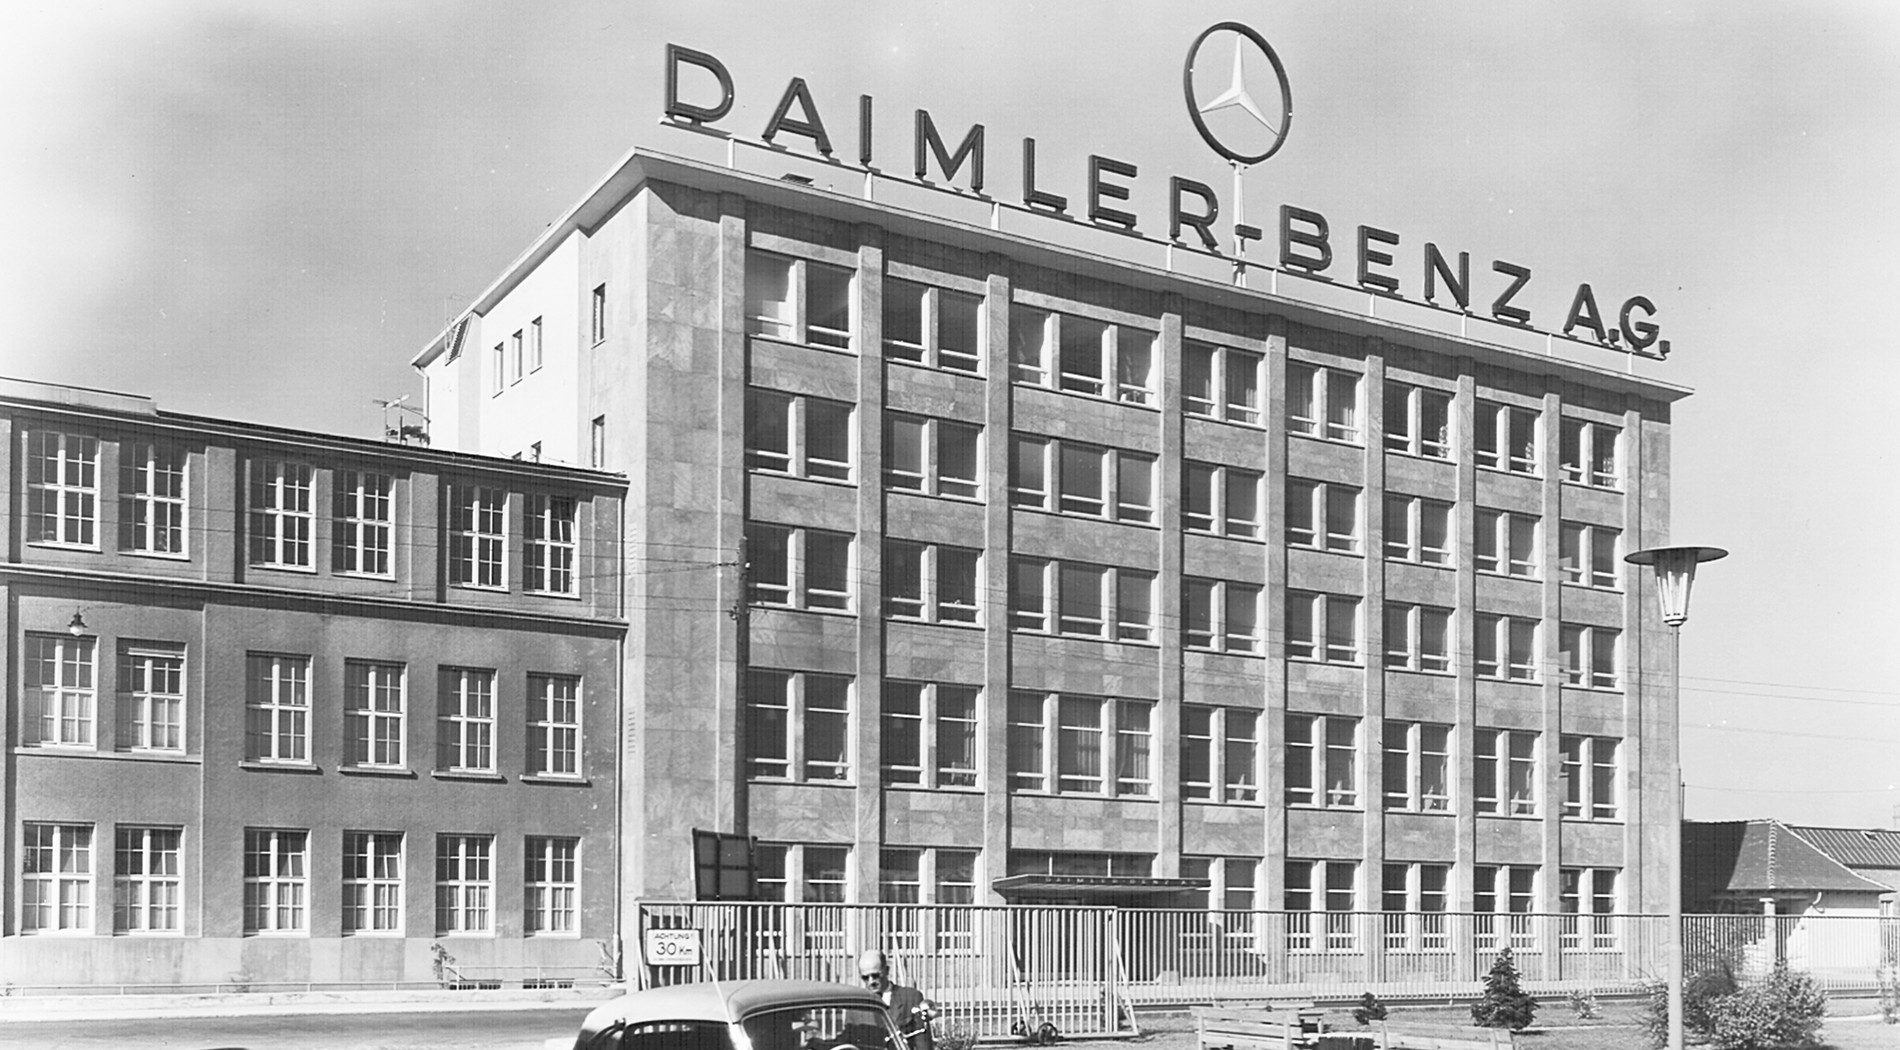 Daimler AG Headquarter